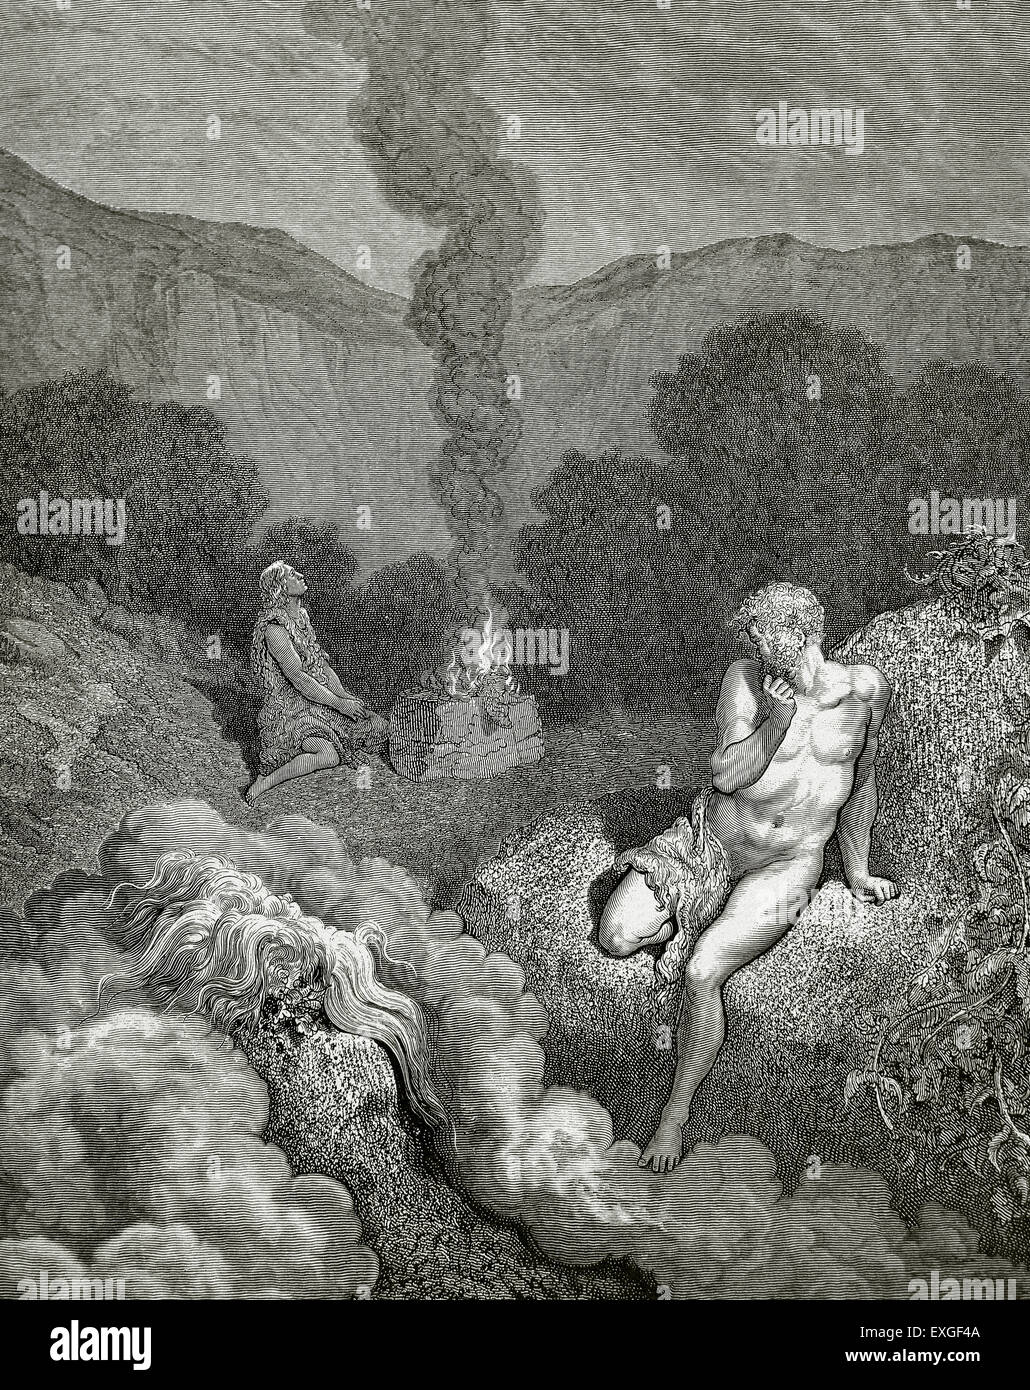 Cain and Abel offering his sacrifice. Engraving by Gustave Dore (1832-1883) in The Bible in Pictures. - Stock Image